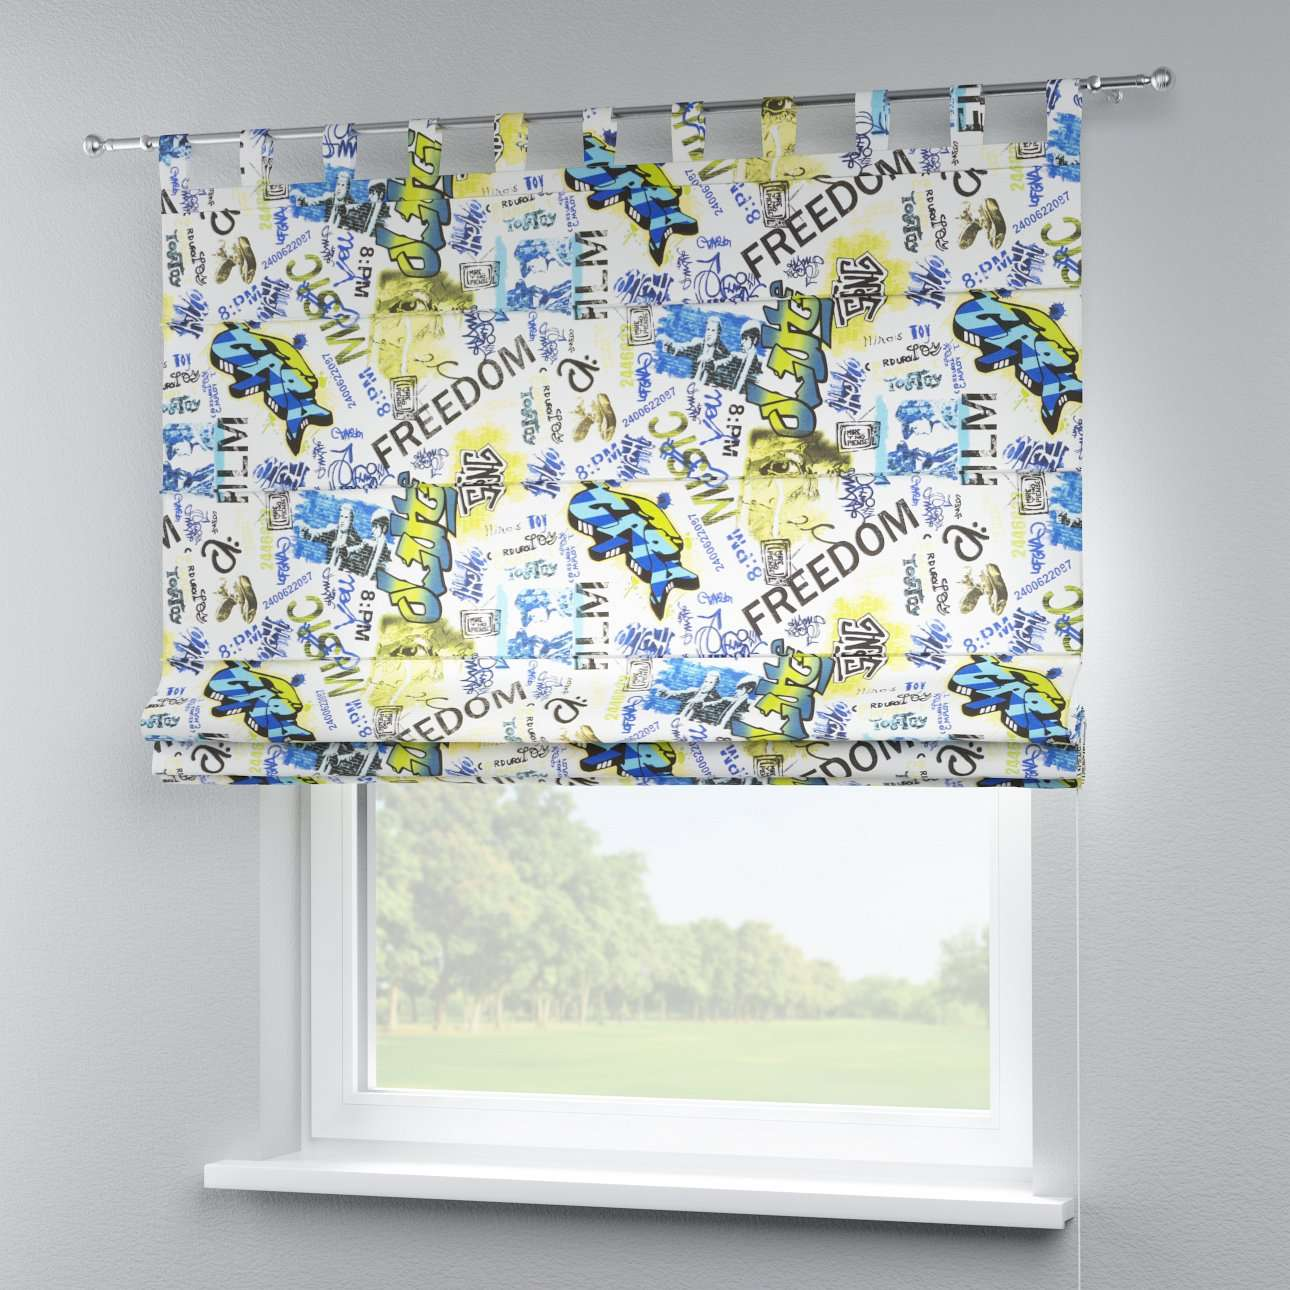 Verona tab top roman blind 80 × 170 cm (31.5 × 67 inch) in collection Freestyle, fabric: 135-08